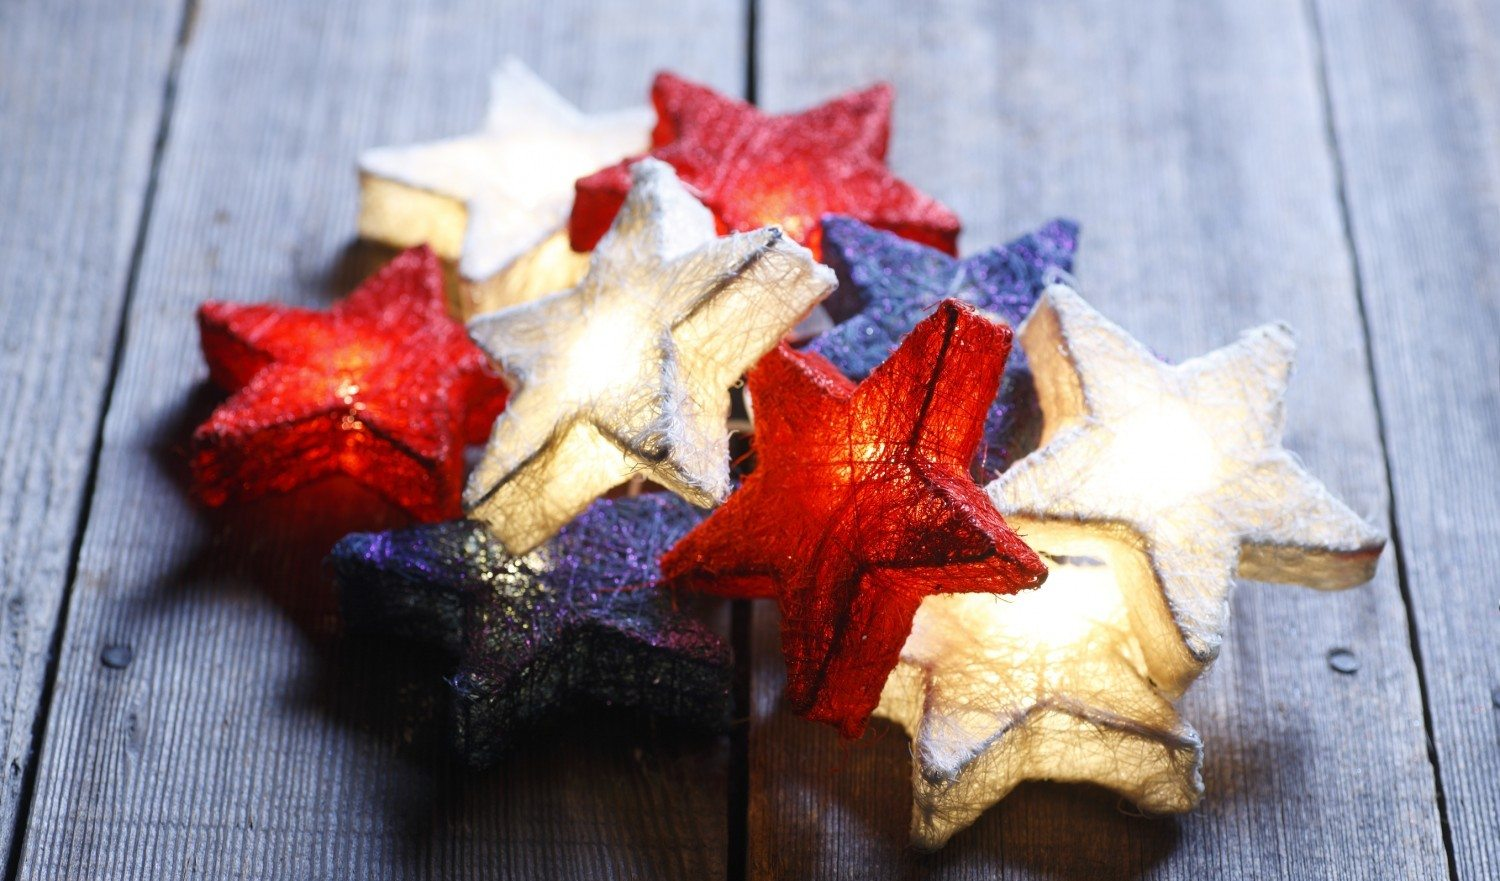 Pile of Red, White, and Blue stars on distressed wood surface